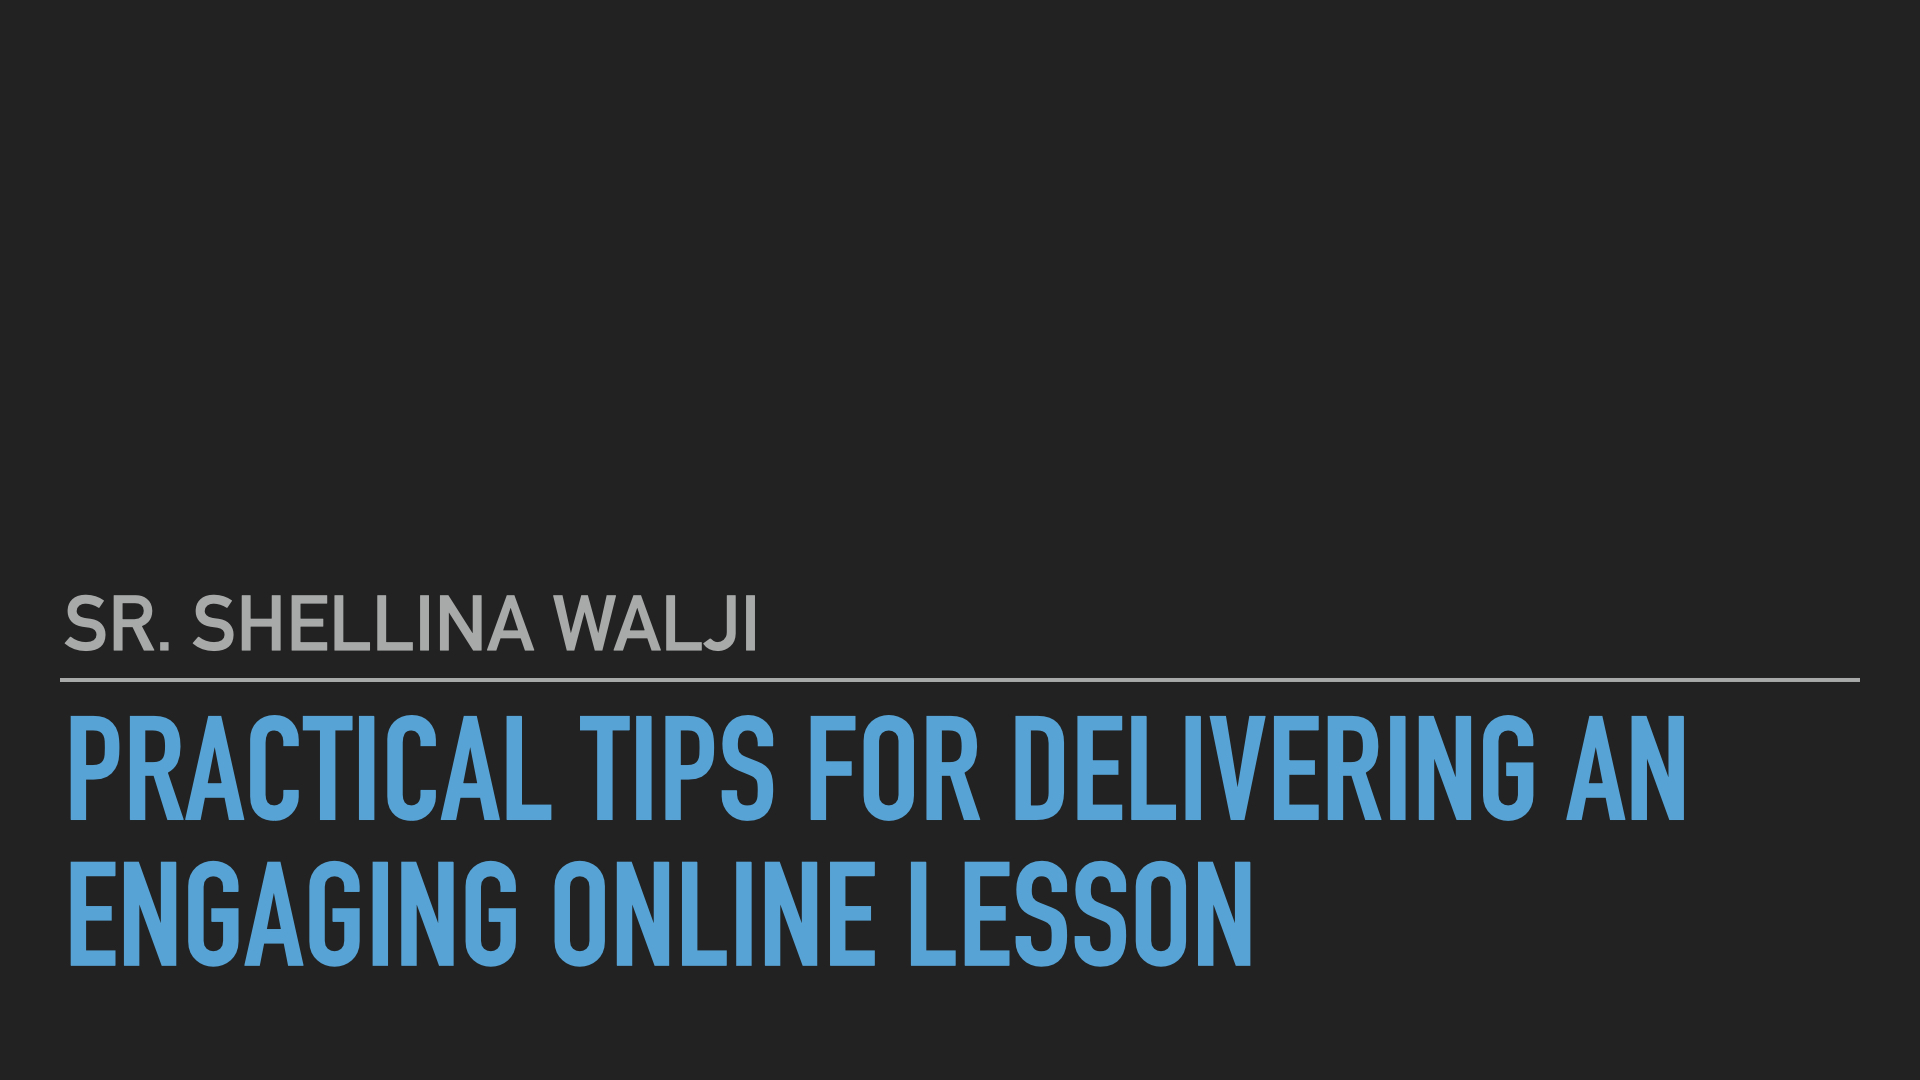 Practical tips for delivering an engaging online lesson